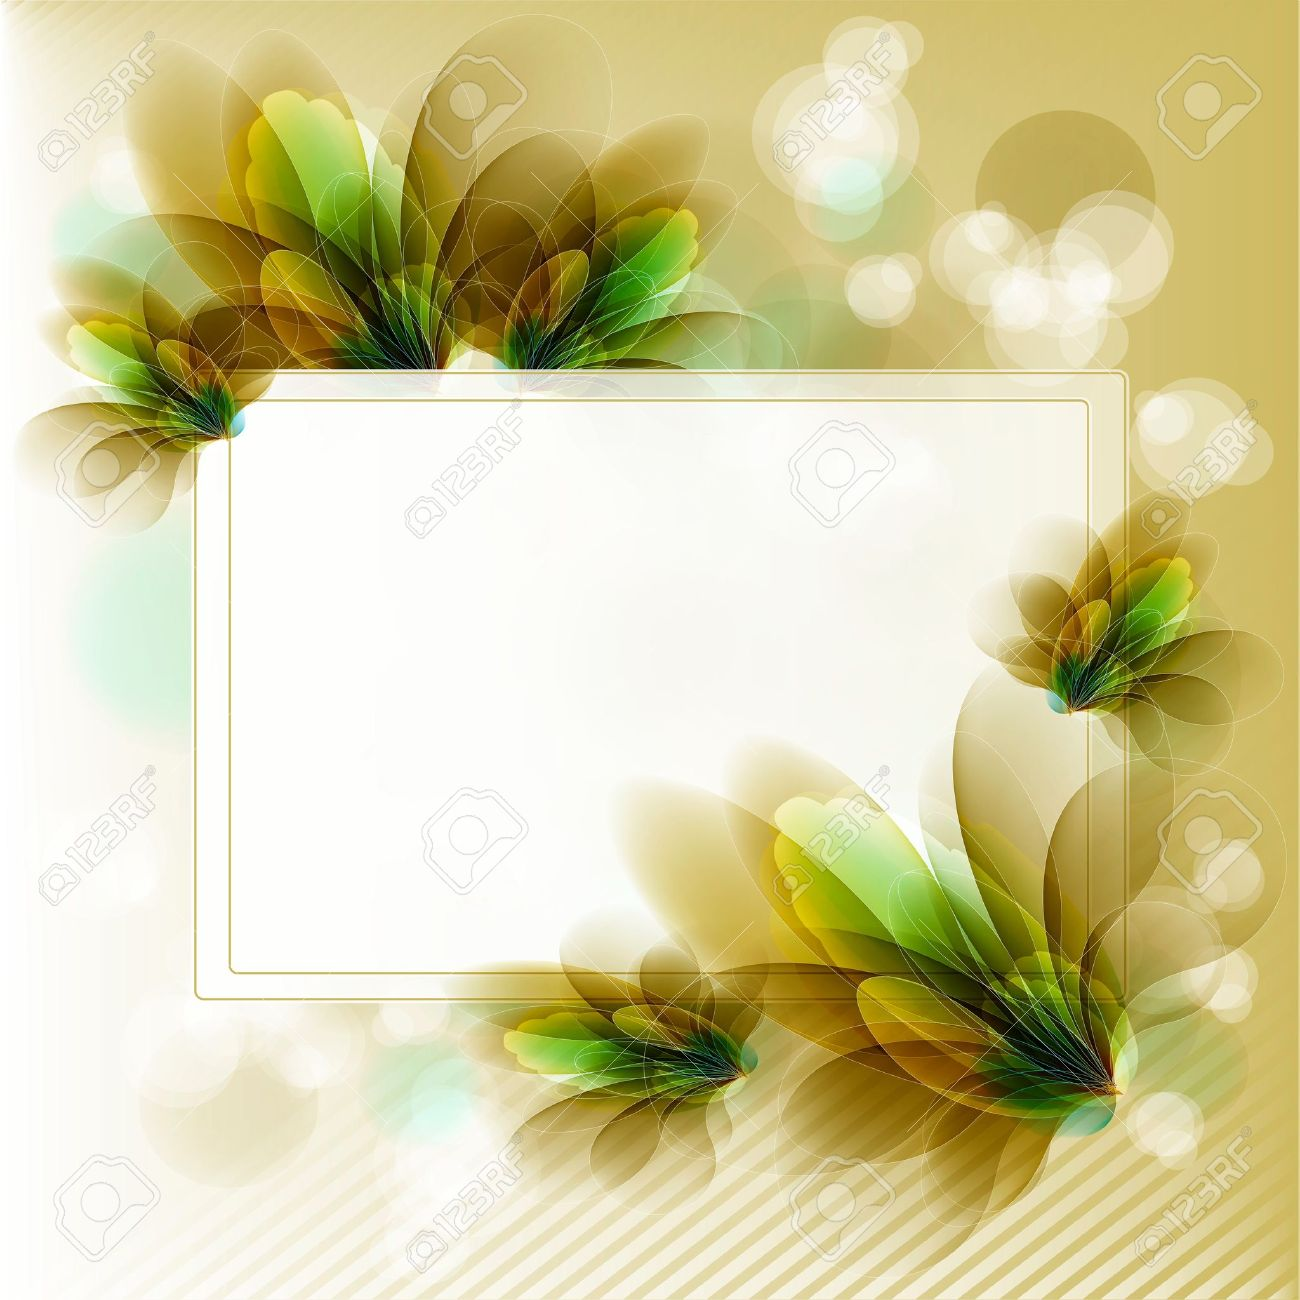 Flowers bright a background are more transparent Stock Vector - 11016264